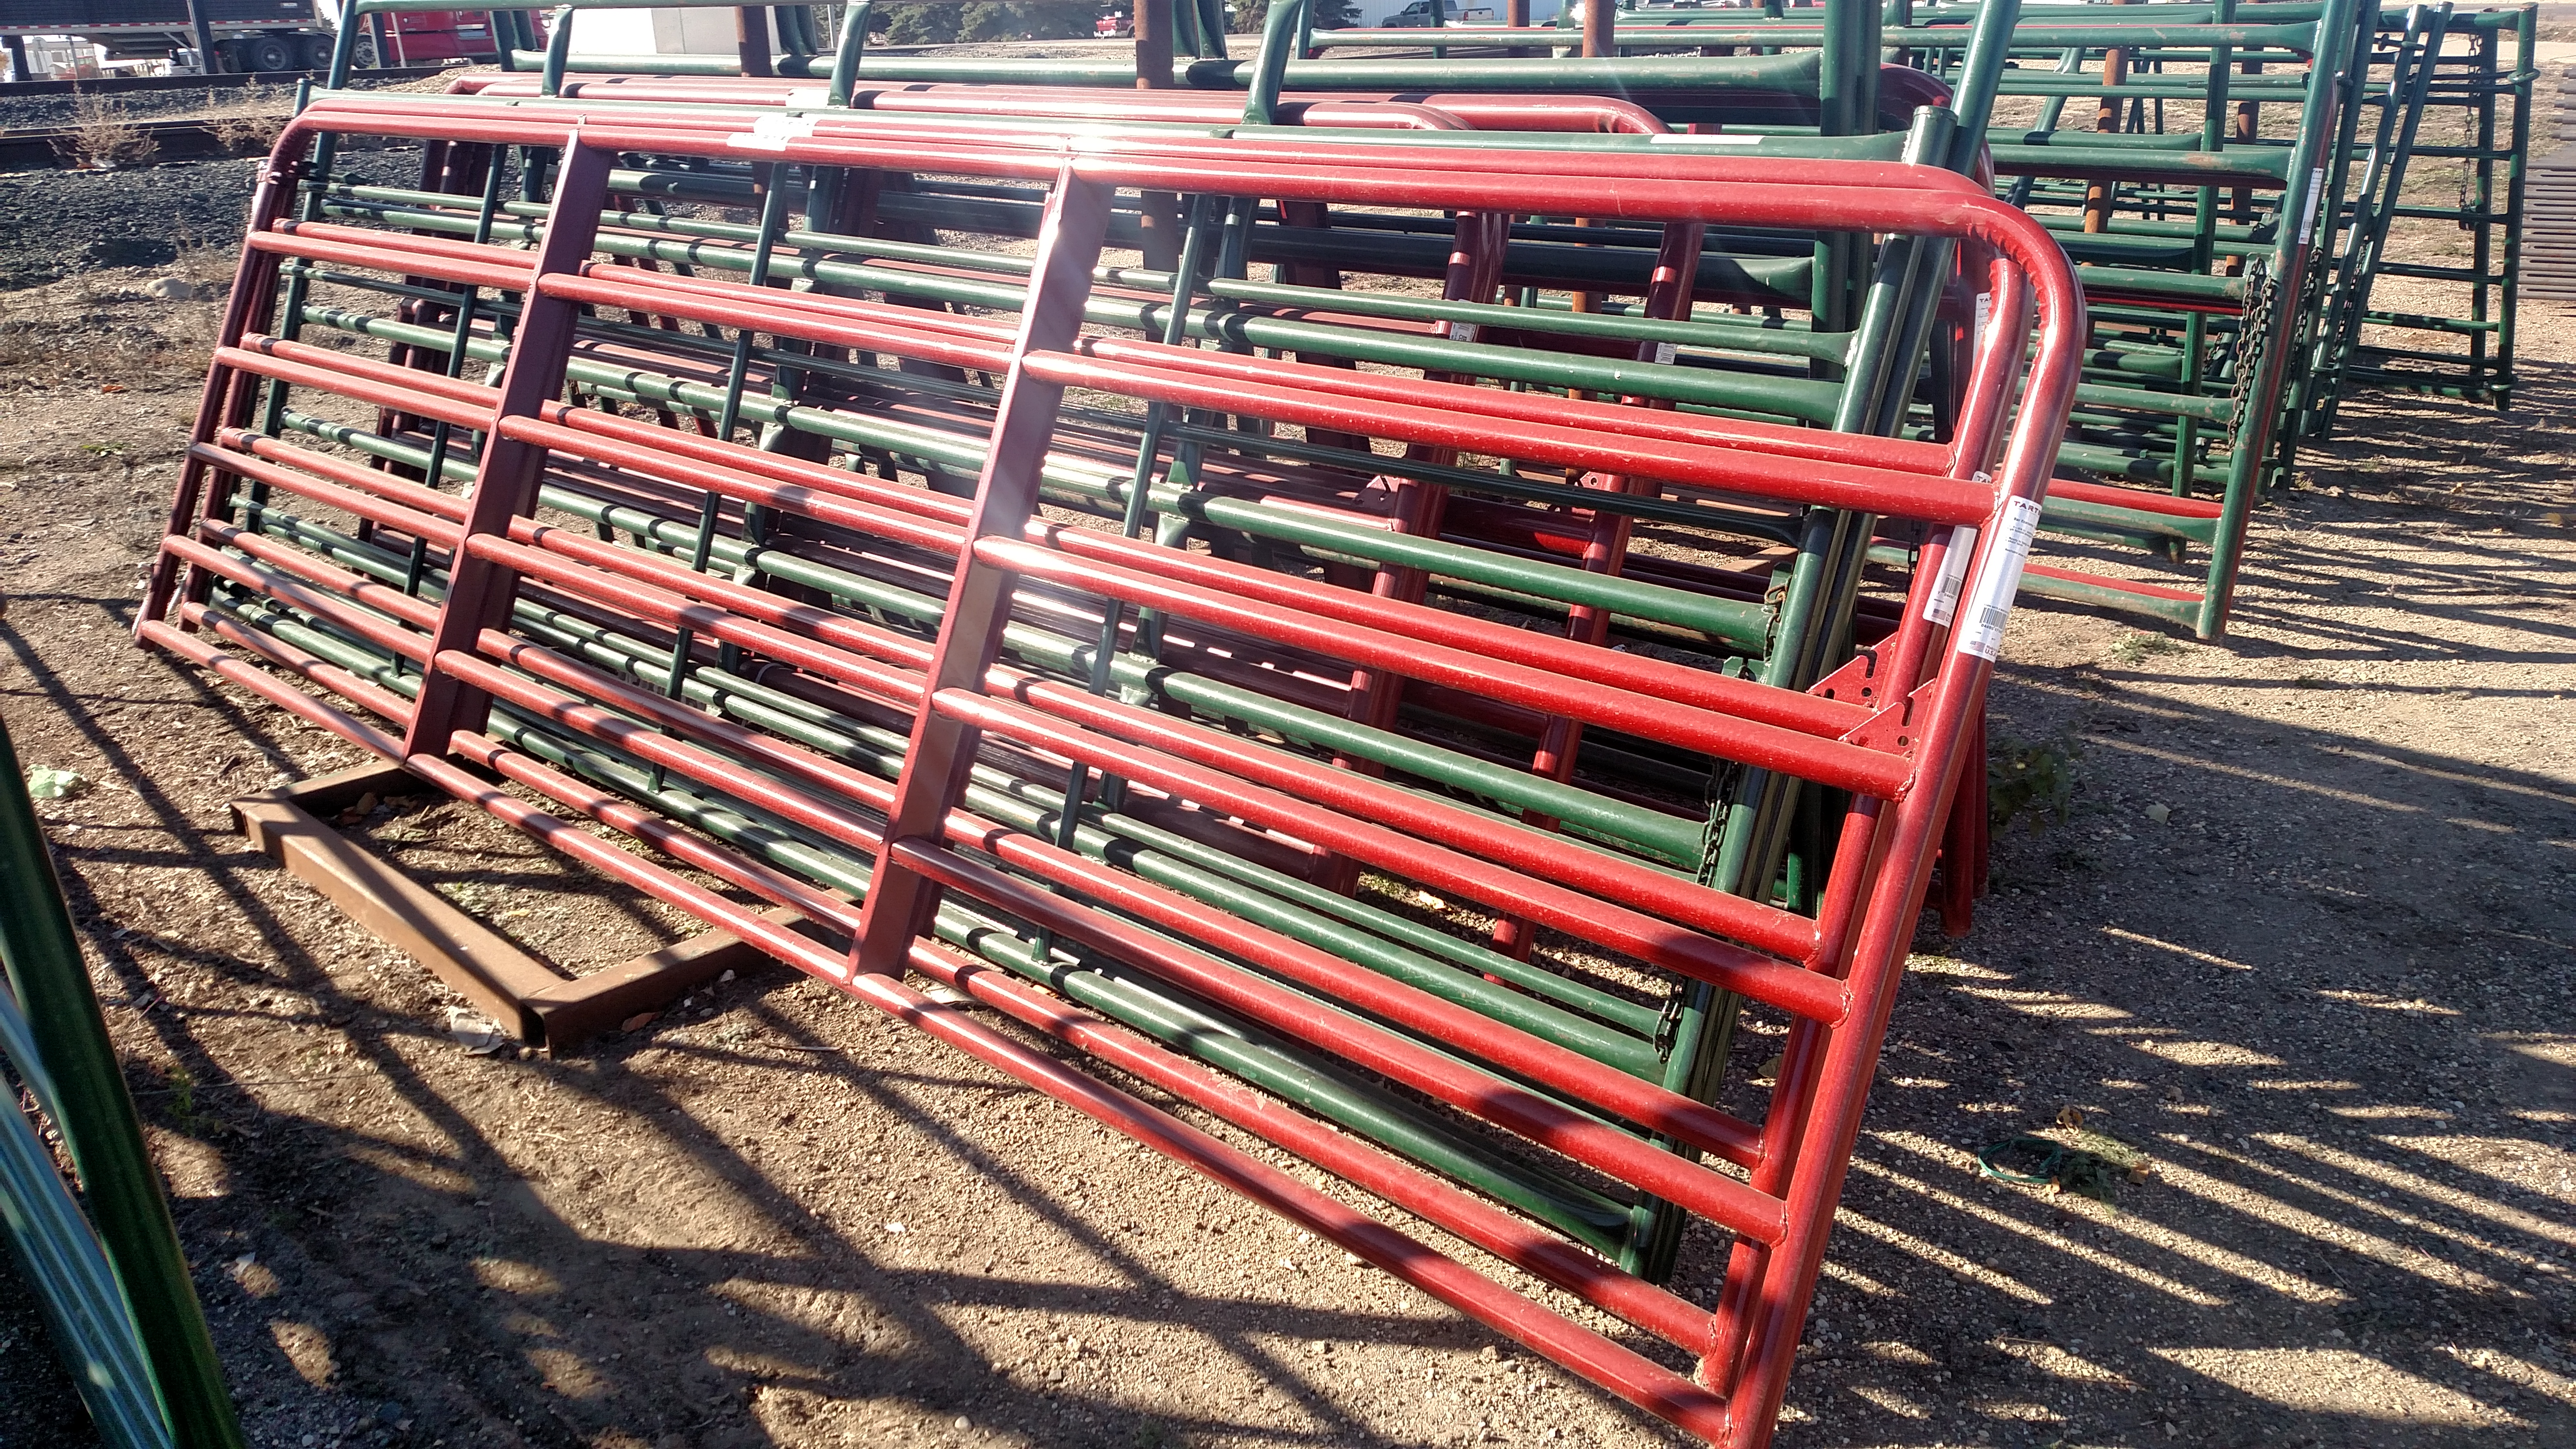 tarter pen adjustable trailer versatile pin removable from the star livestock system most feeders feeder trailers and